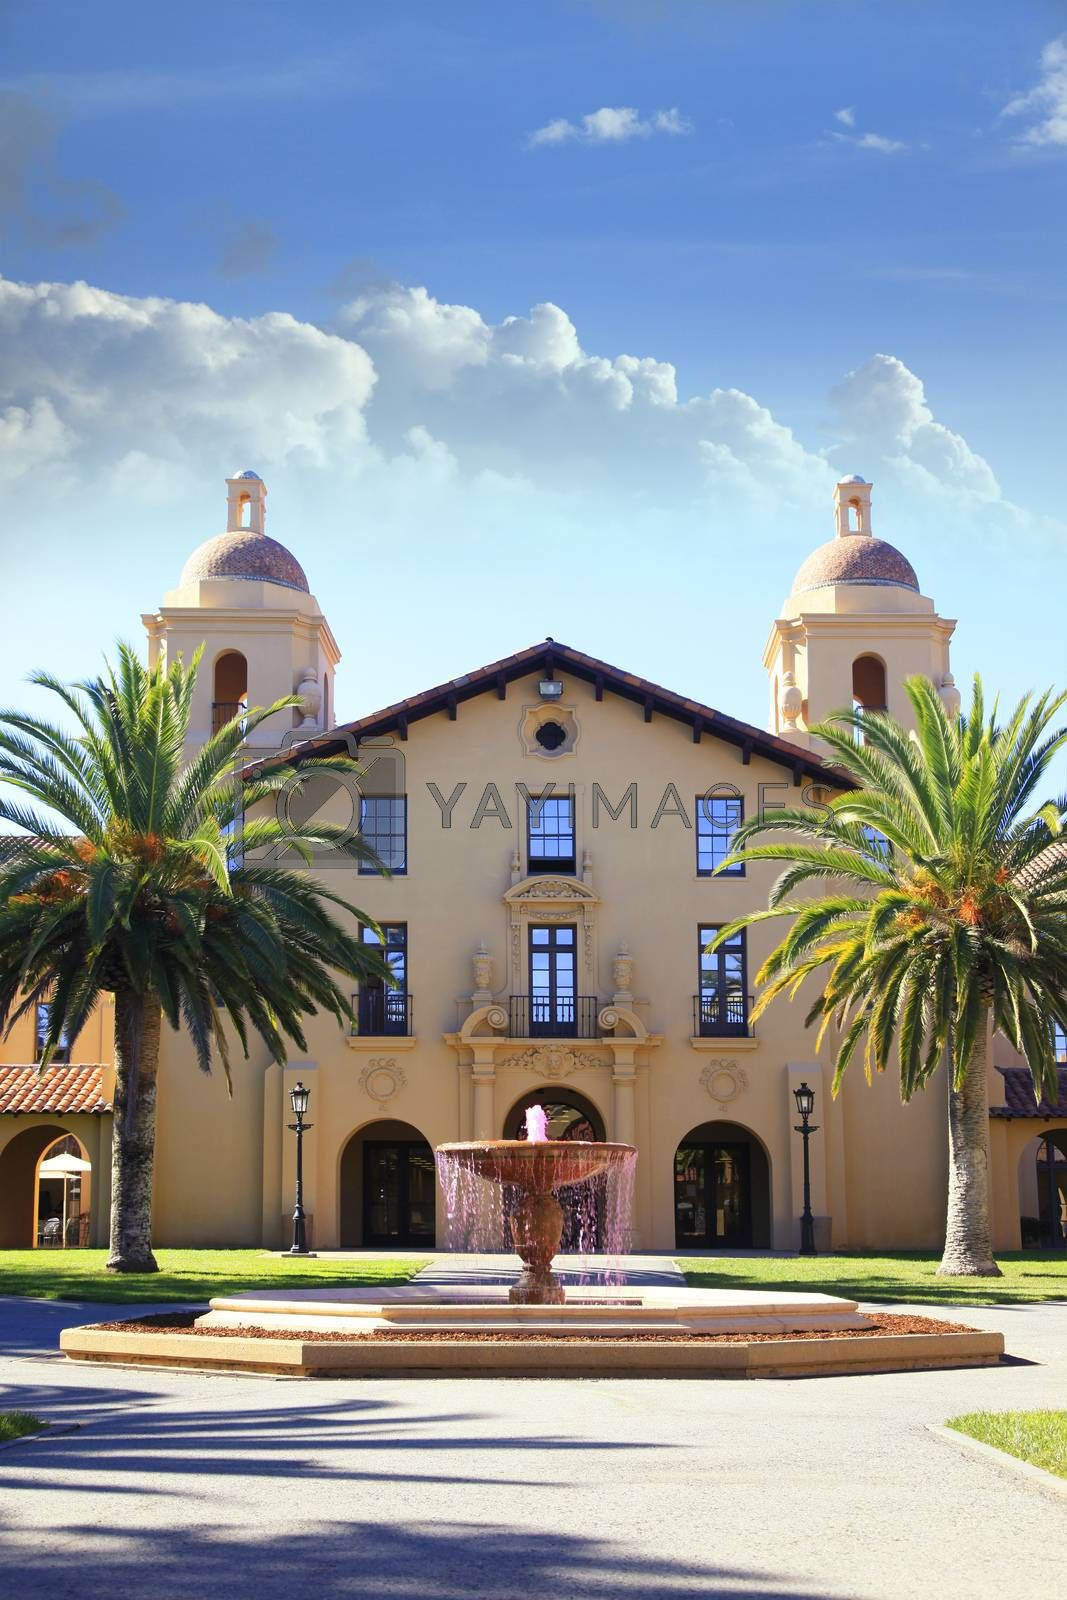 Stanford University, located south of San Francisco in Palo Alto, was founded in 1885